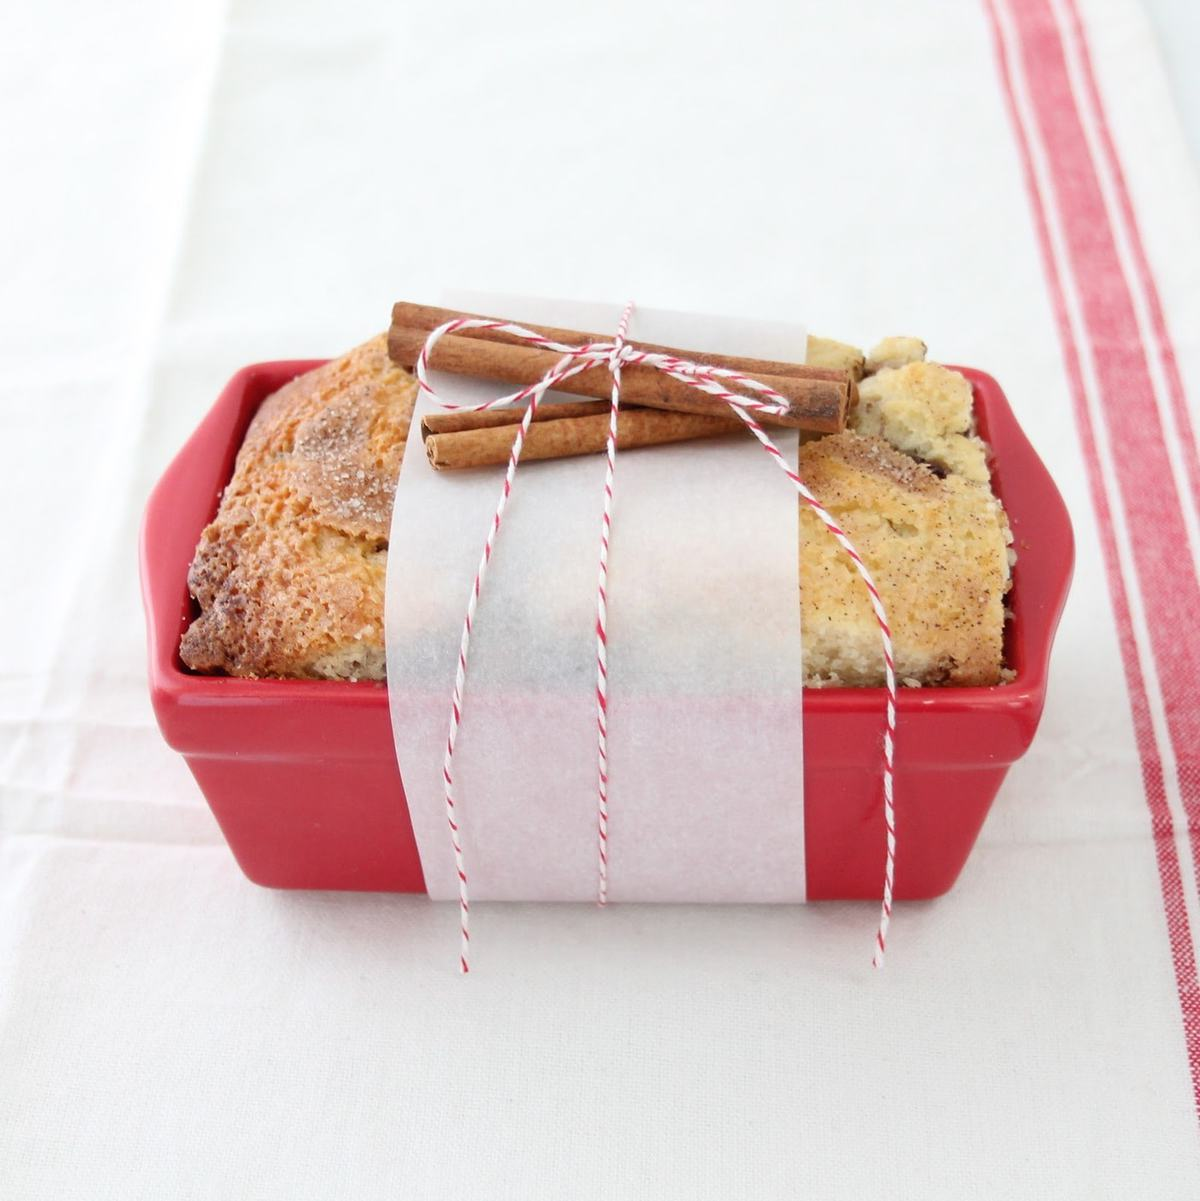 Christmas dessert ideas for gifts